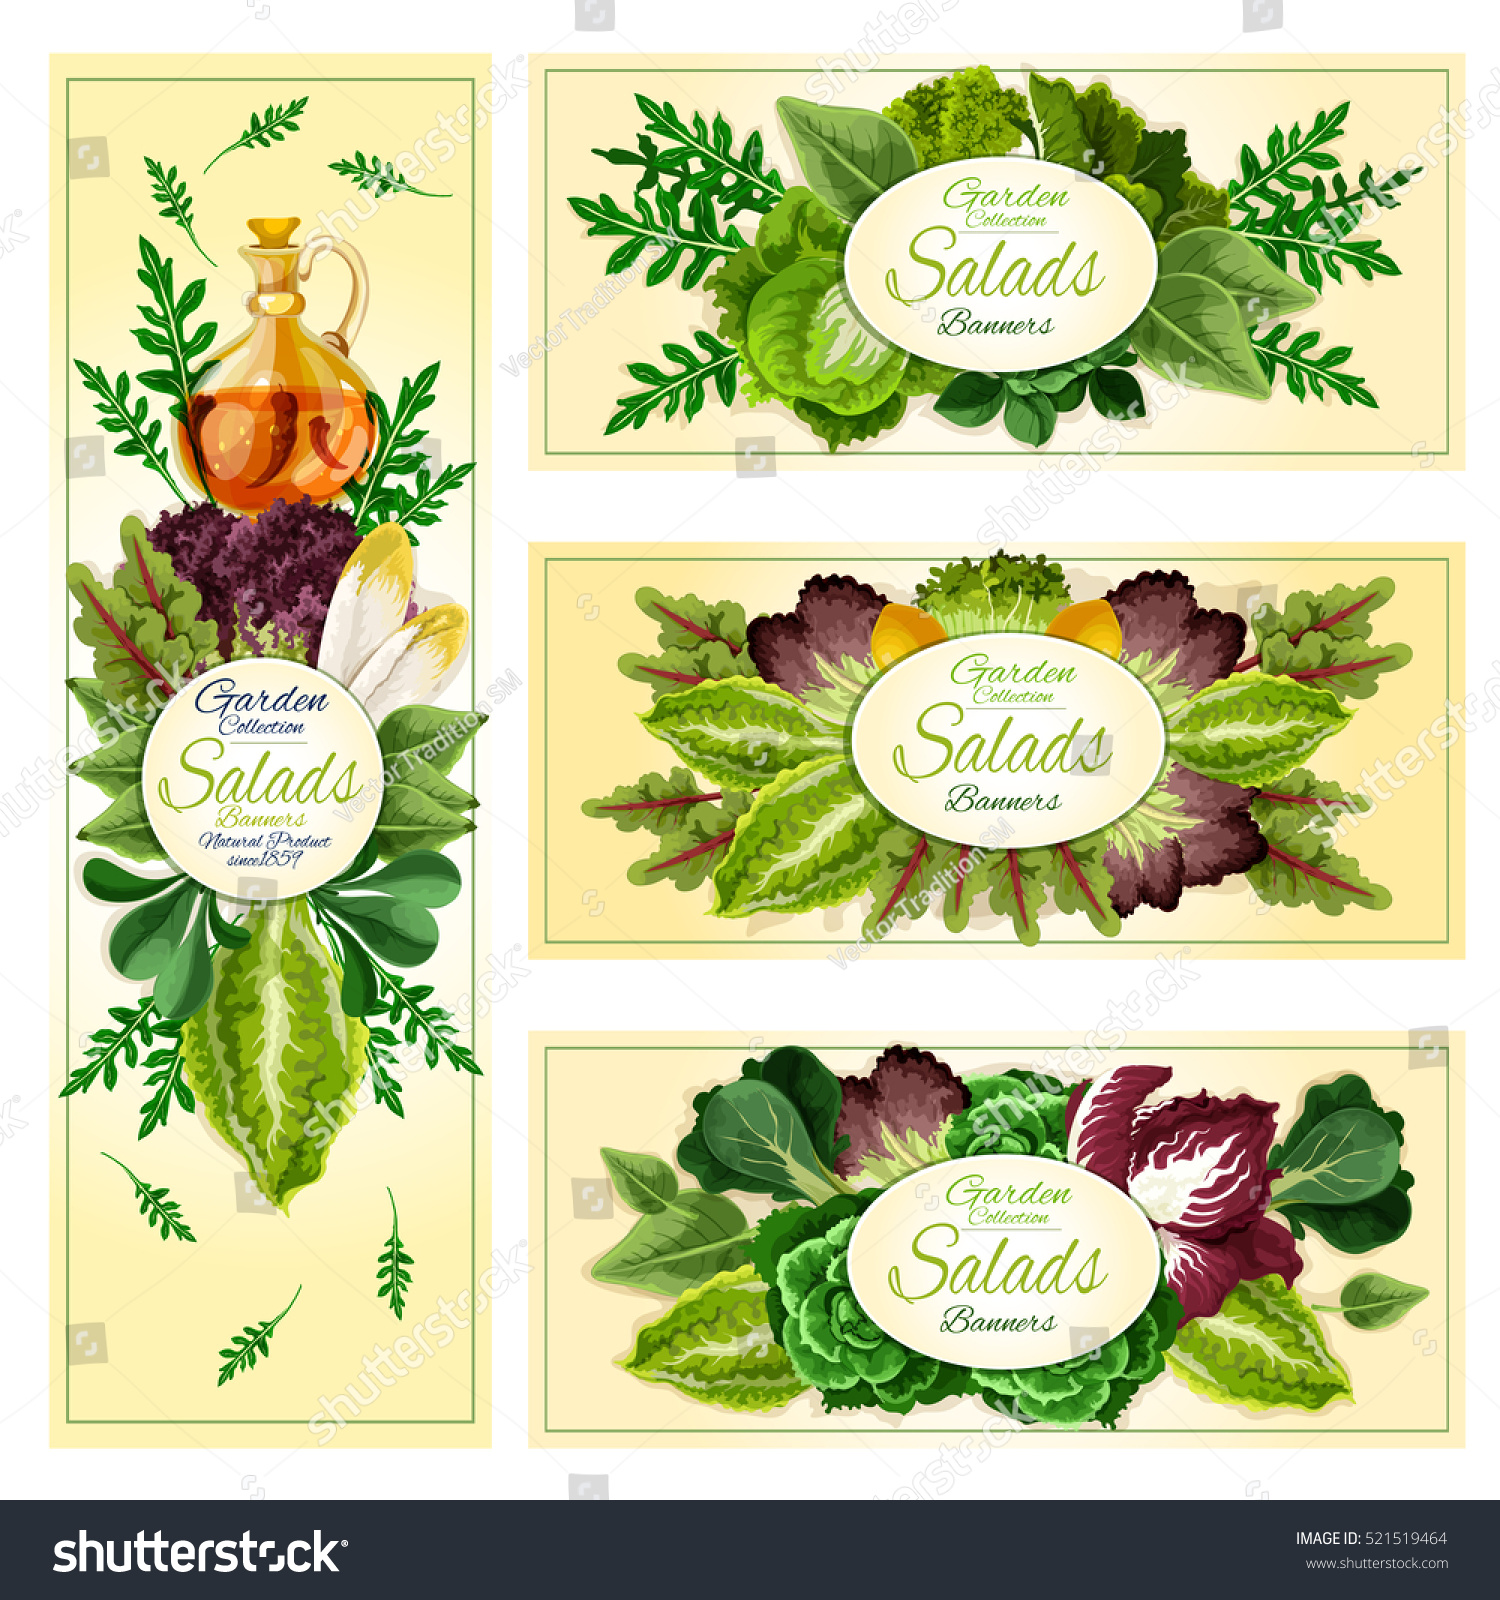 Salad Leaf And Vegetable Banners With Lettuce Spinach And Chinese Cabbage Arugula And Iceberg